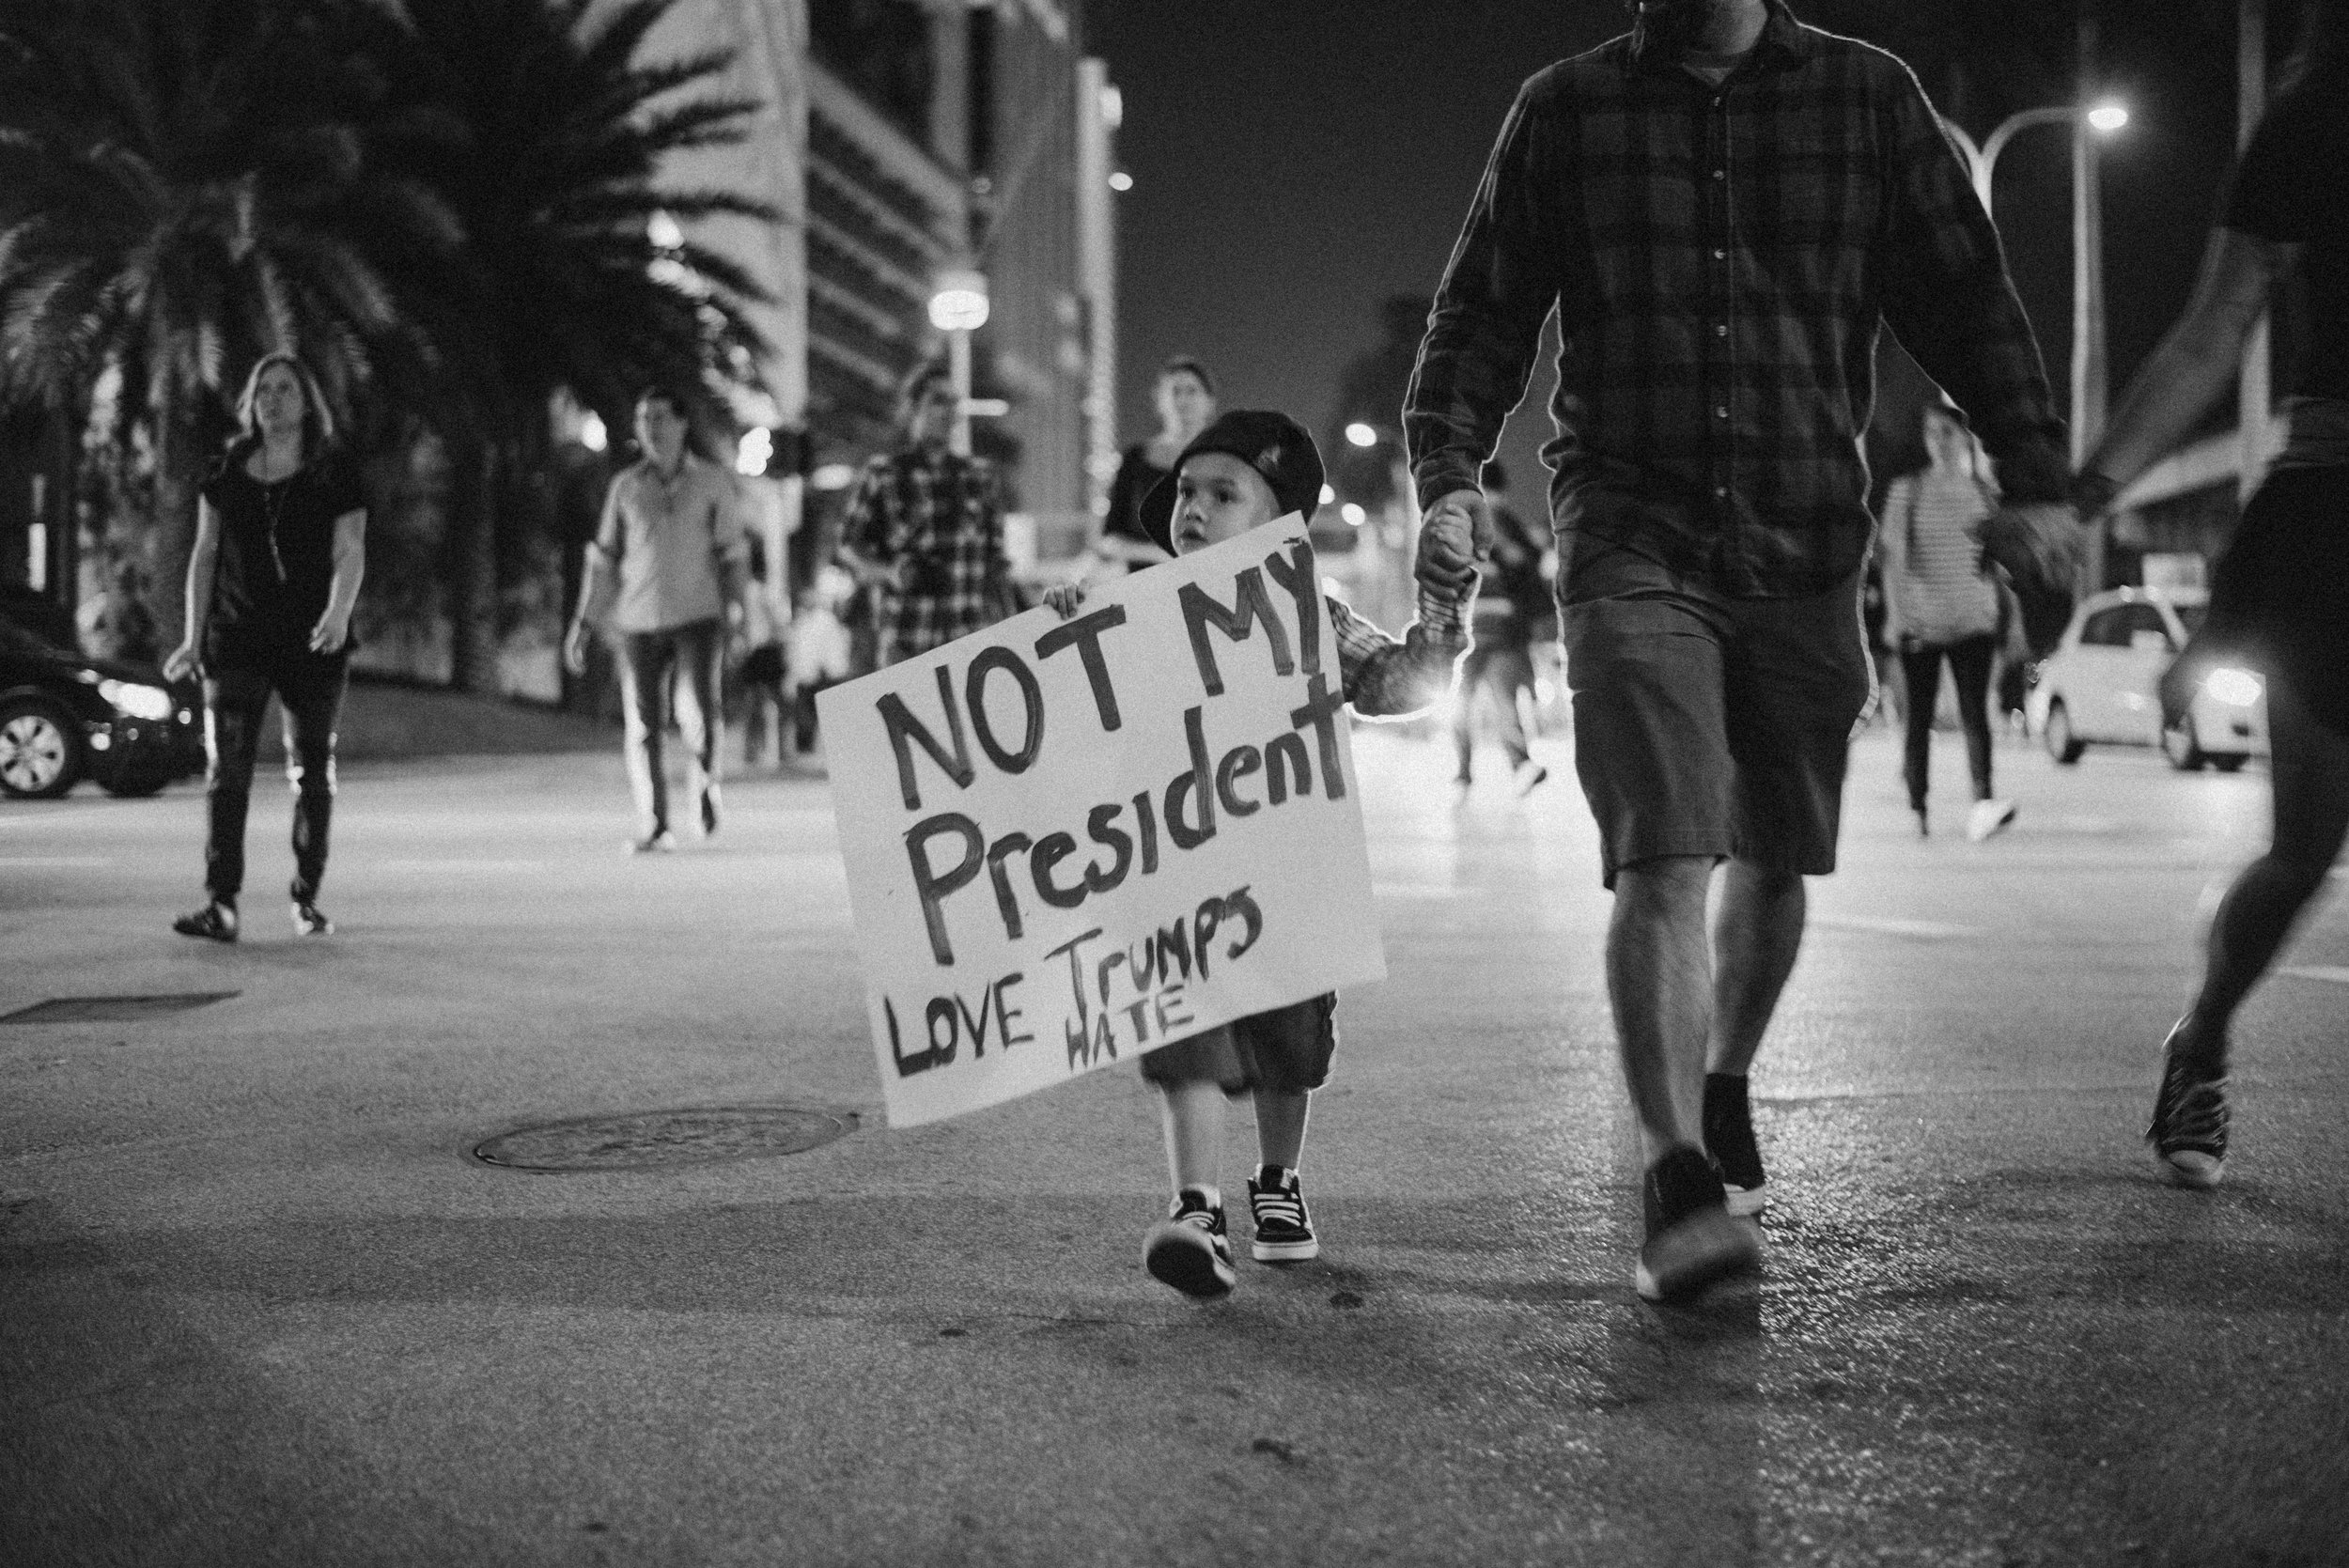 I went out to document history in Miami when Donald Trump got elected. It was wild and I have never felt more alive than that day